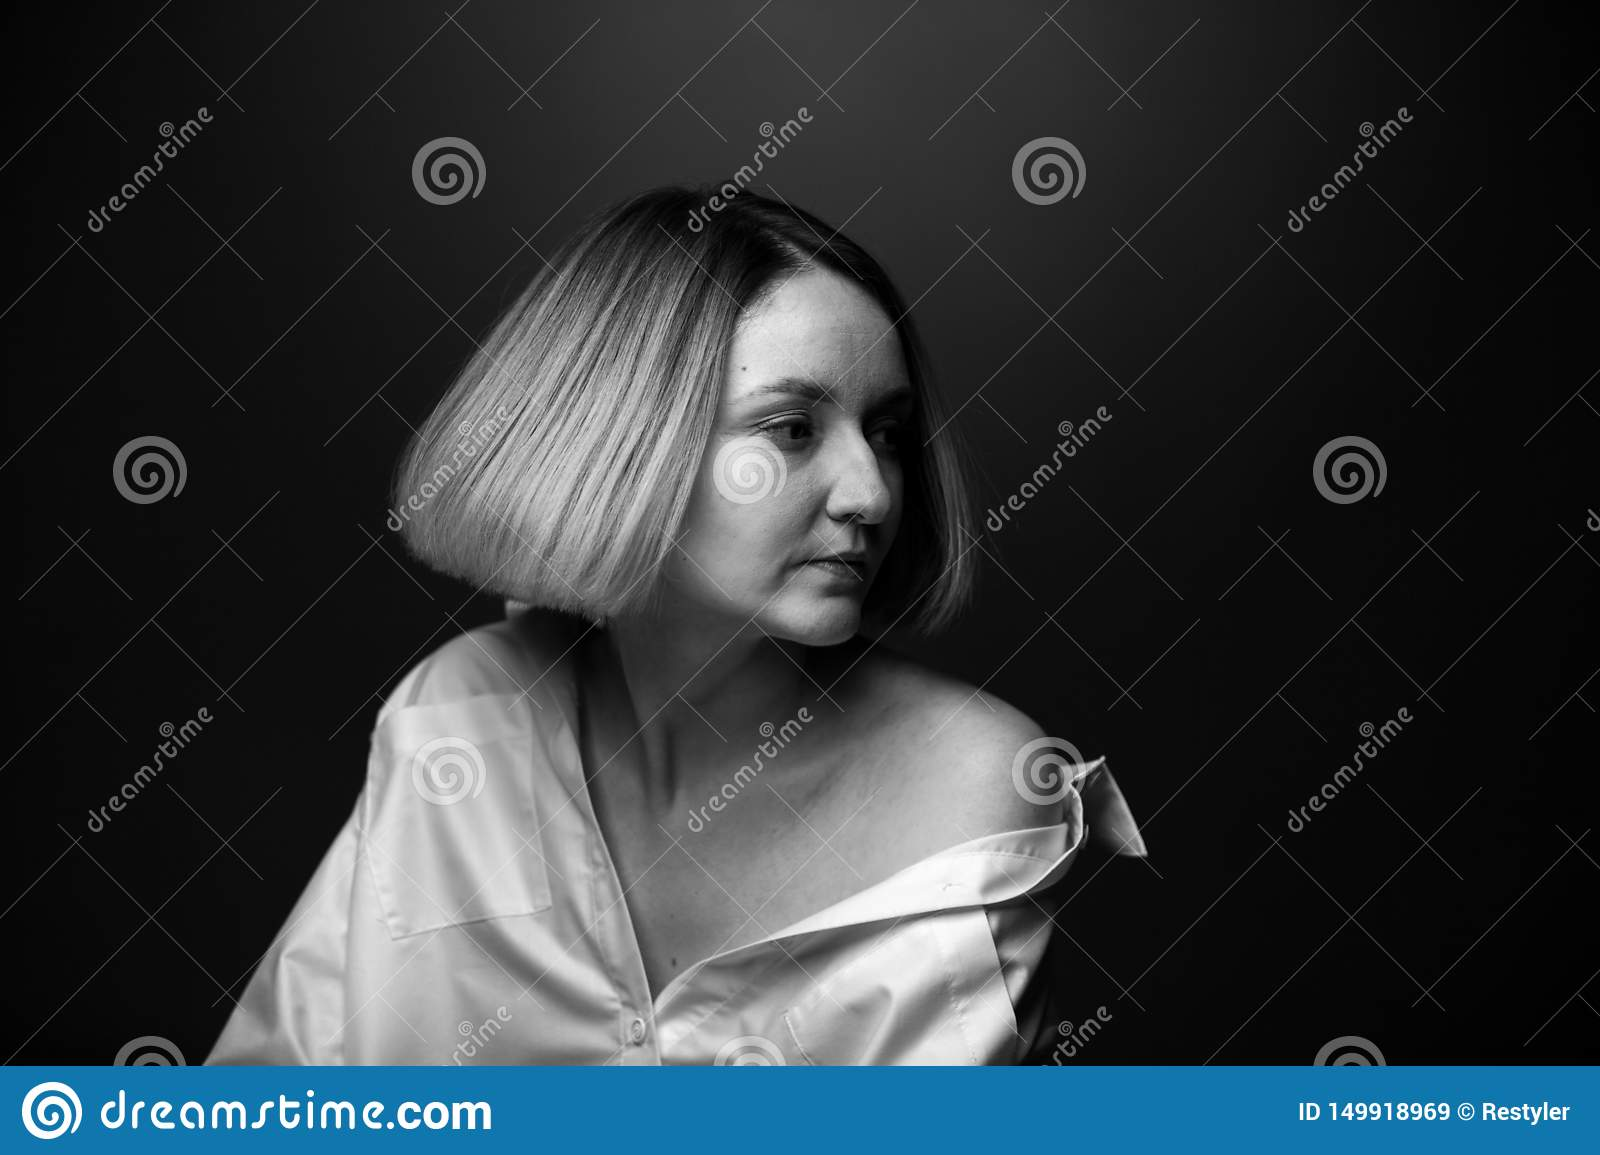 Dramatic black and white portrait of a beautiful woman on a dark